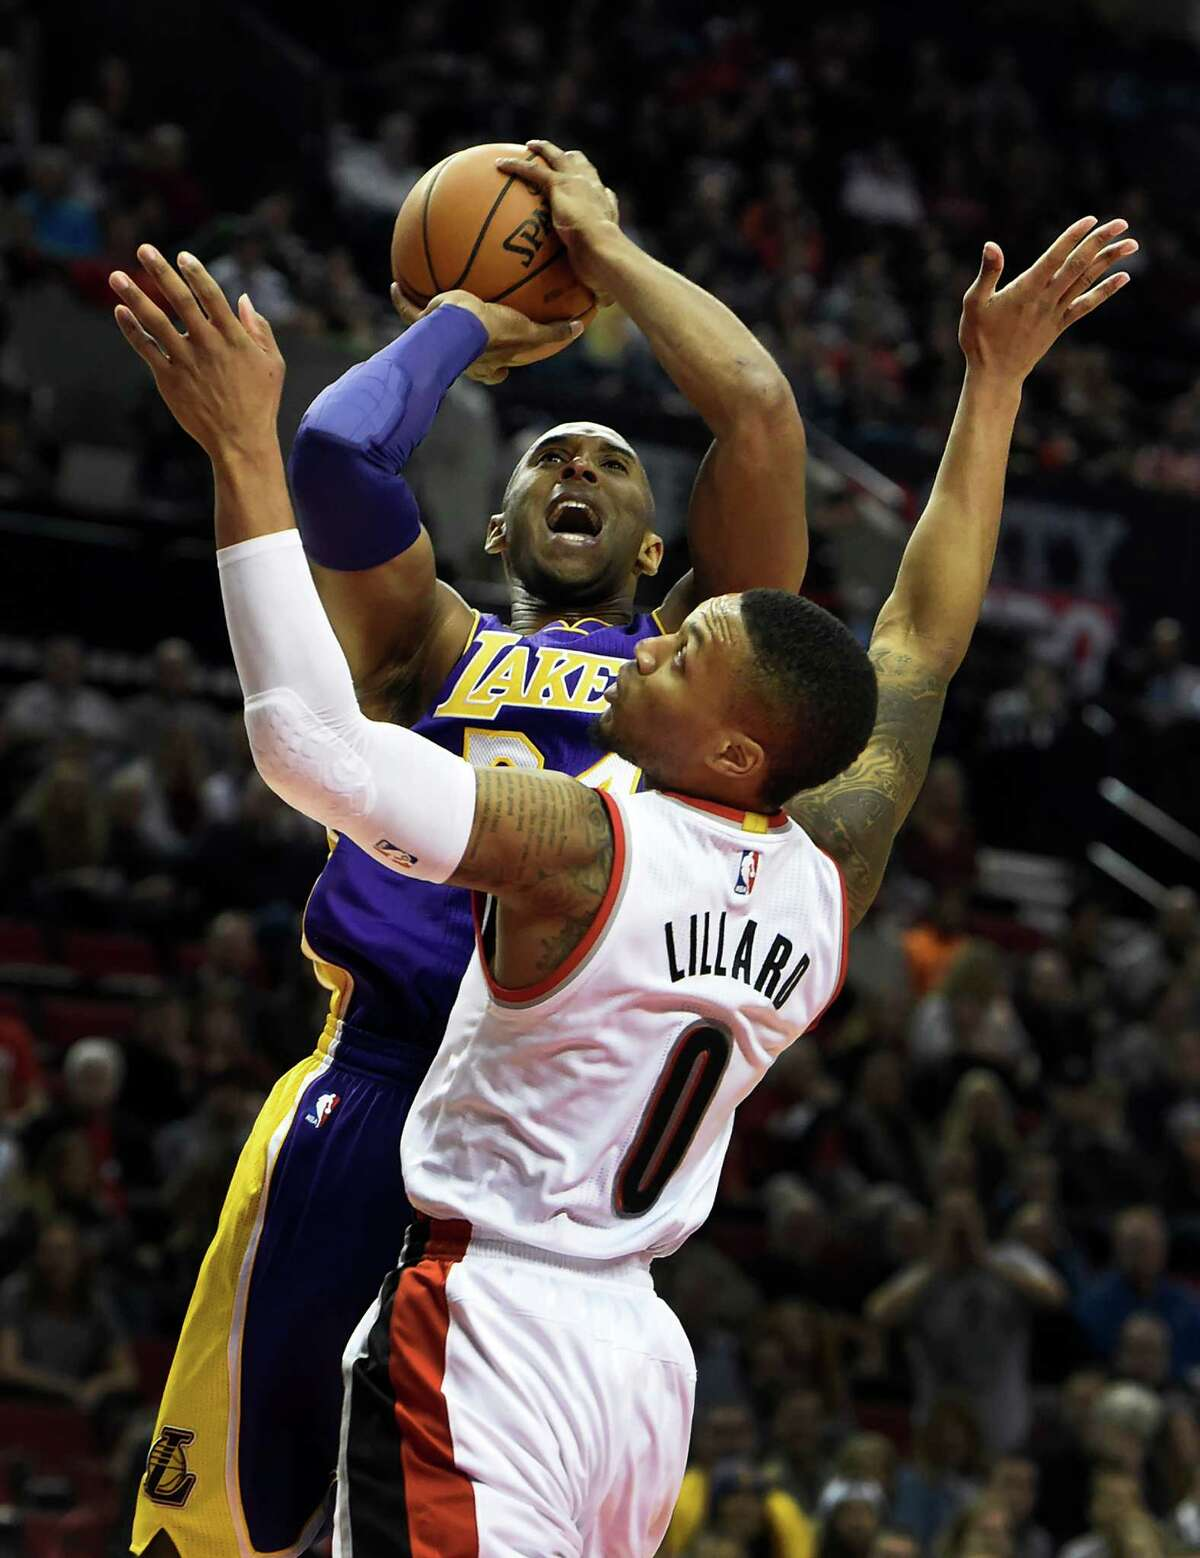 Los Angeles Lakers forward Kobe Bryant (24) shoots the ball over Portland Trail Blazers guard Damian Lillard (0) during the first half of an NBA basketball game on Saturday, Nov. 28, 2015, in Portland, Ore. (AP Photo/Steve Dykes) ORG XMIT: ORSD102